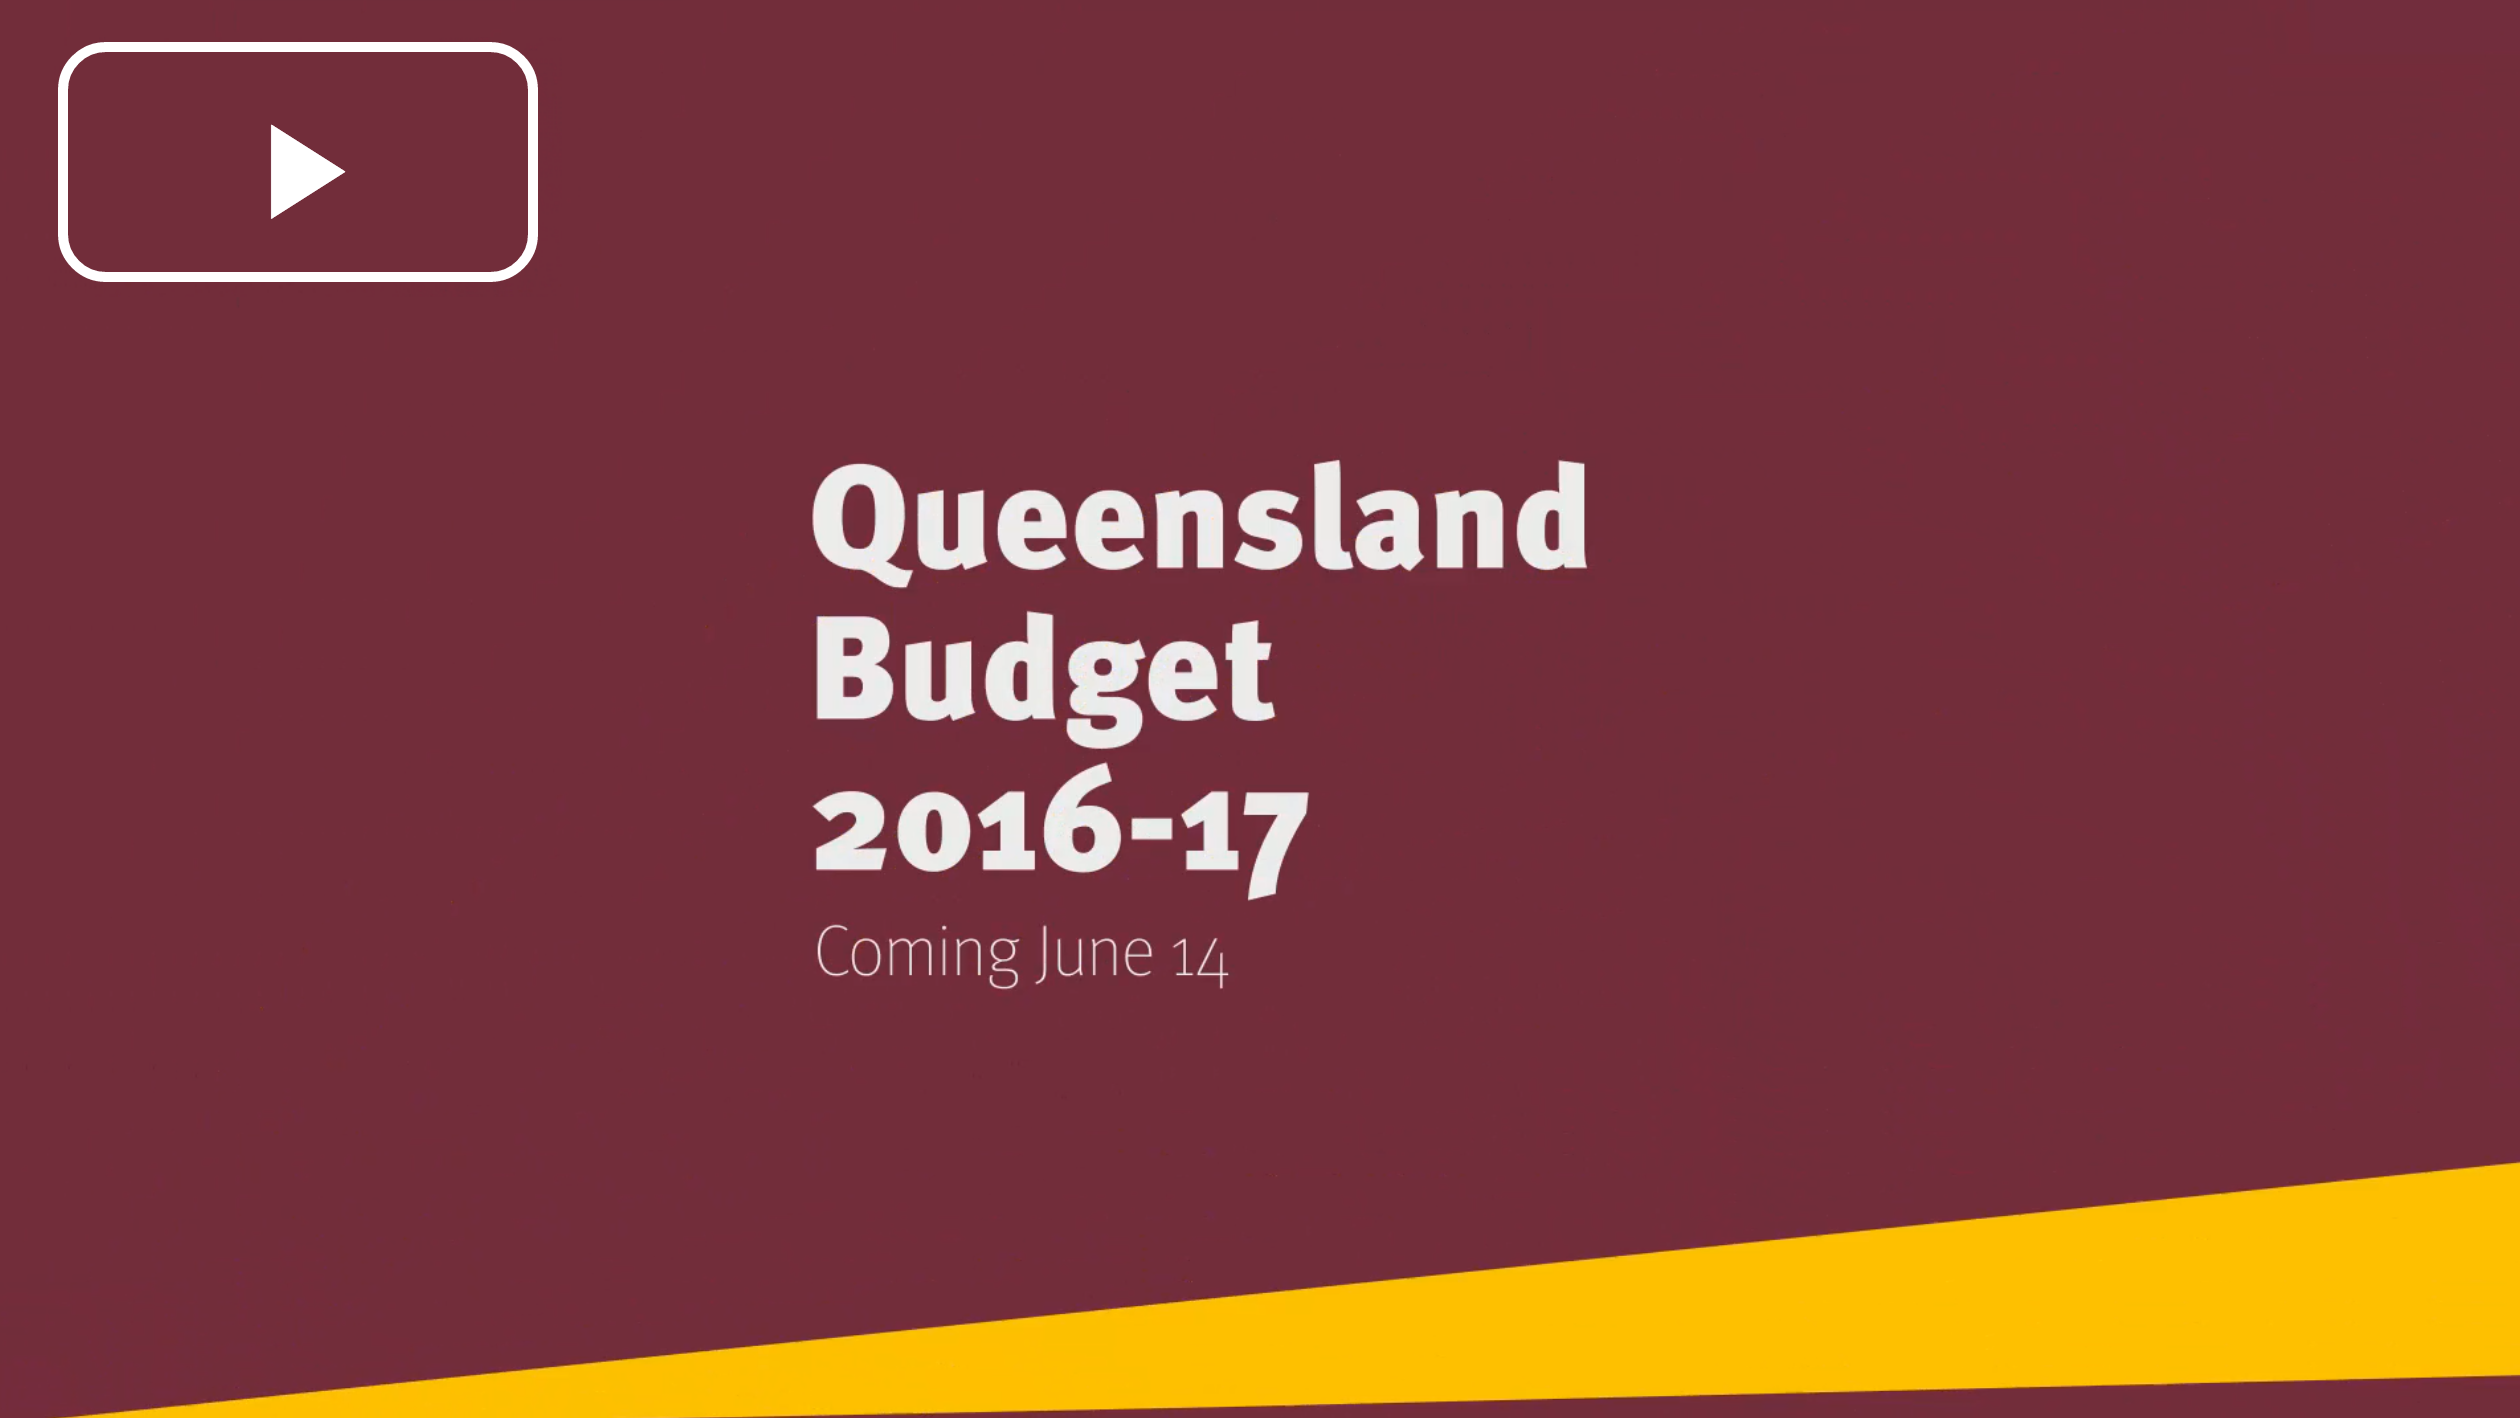 Queensland Budget 201617 (With images) Budgeting